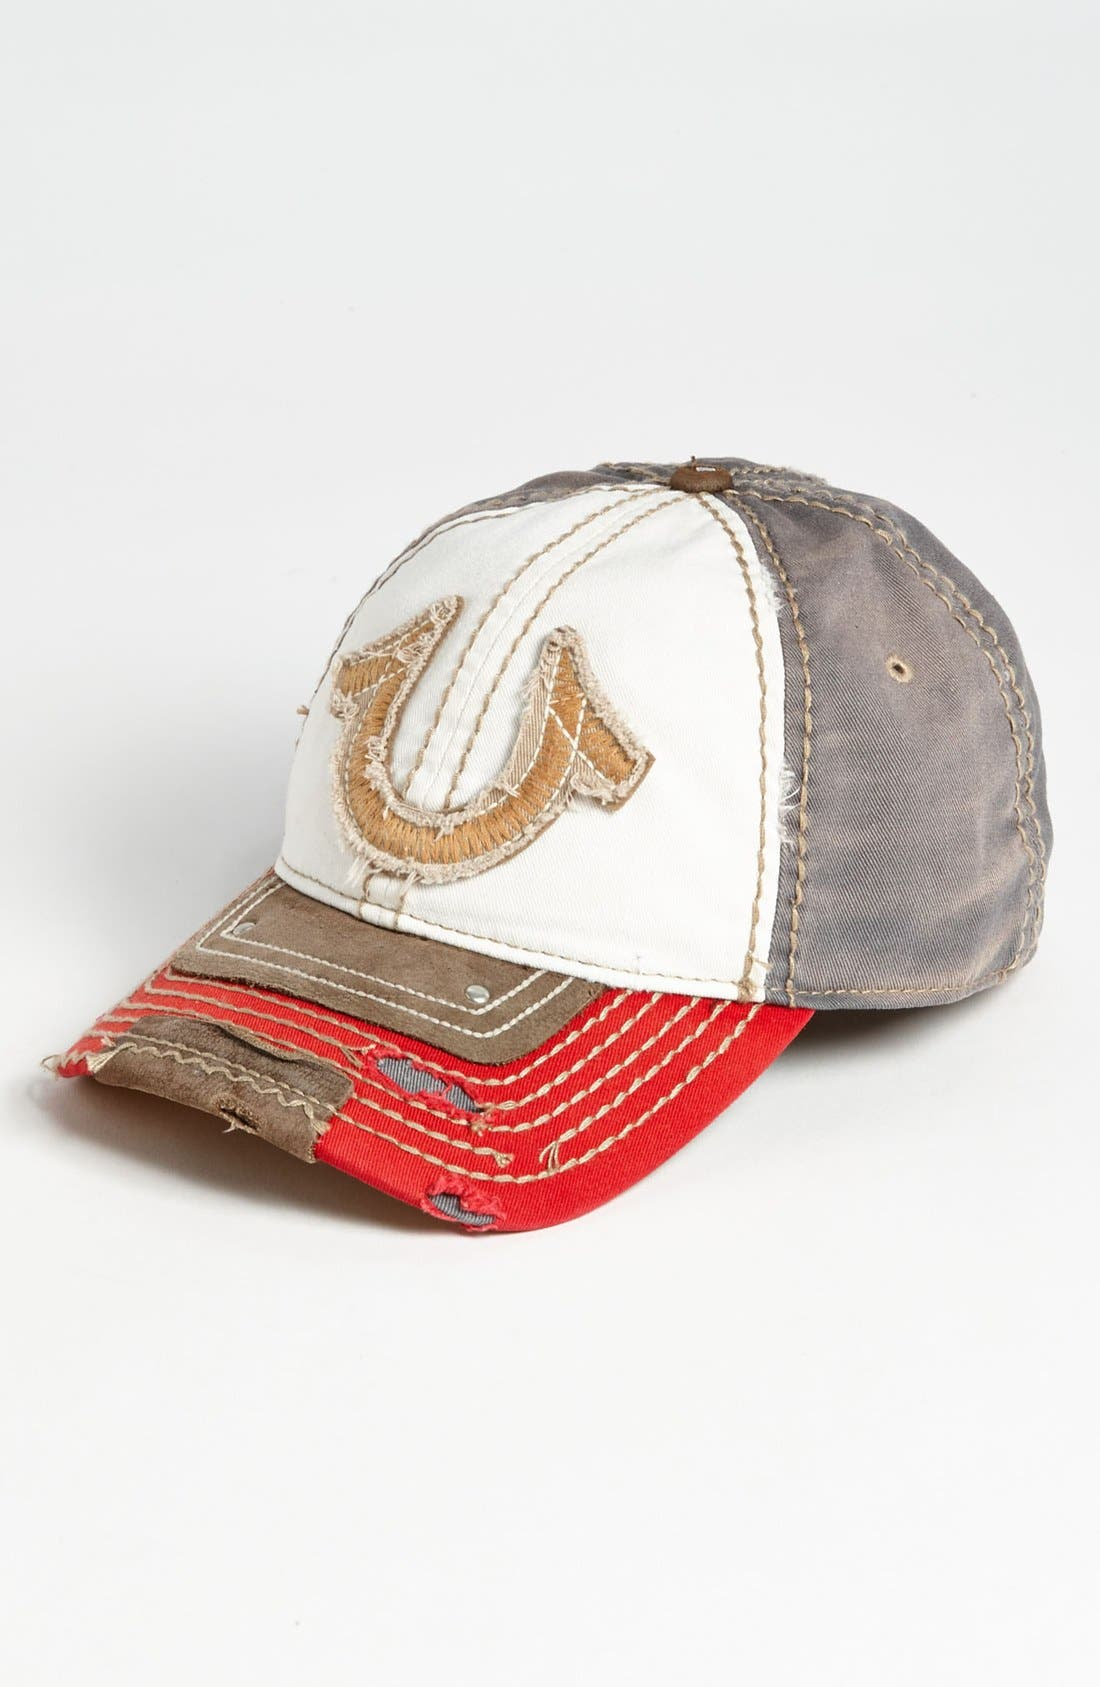 Alternate Image 1 Selected - True Religion Brand Jeans 'Vintage Horseshoe' Baseball Cap